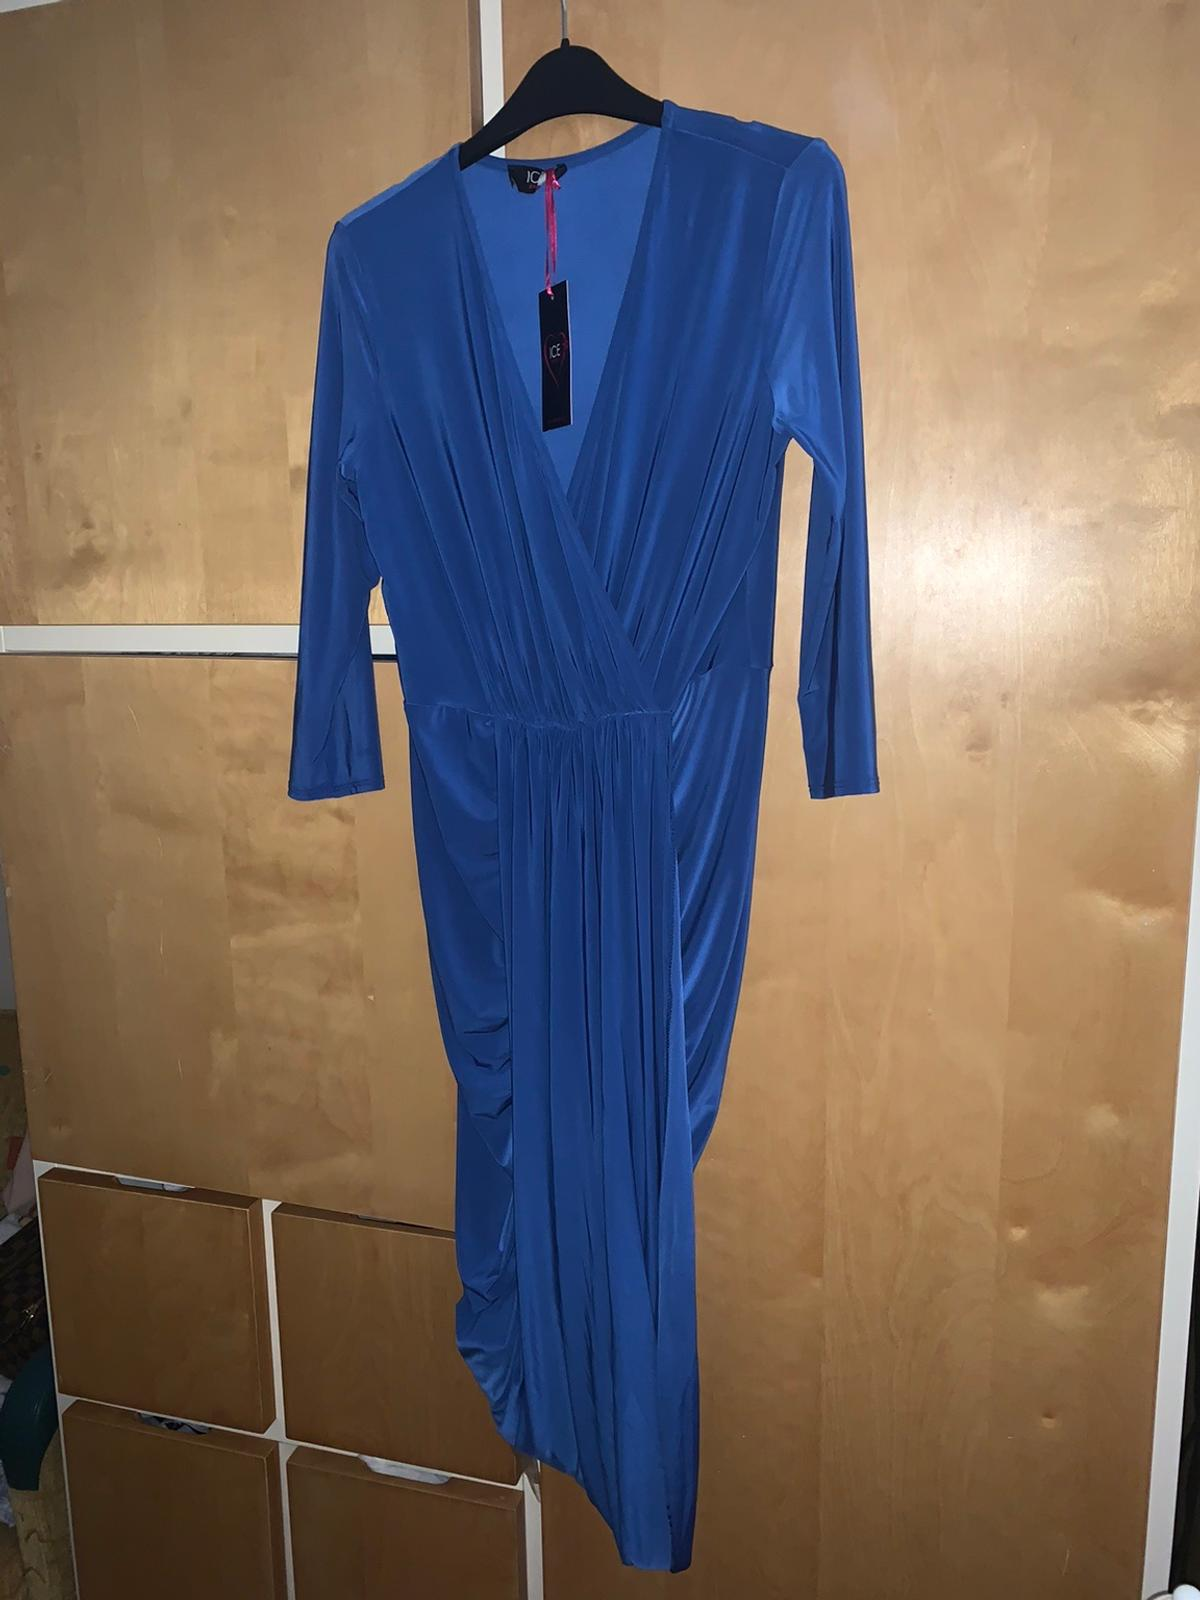 Gorgeous cobalt blue maxi dress brand new with tags size 14 but would fit 12-14